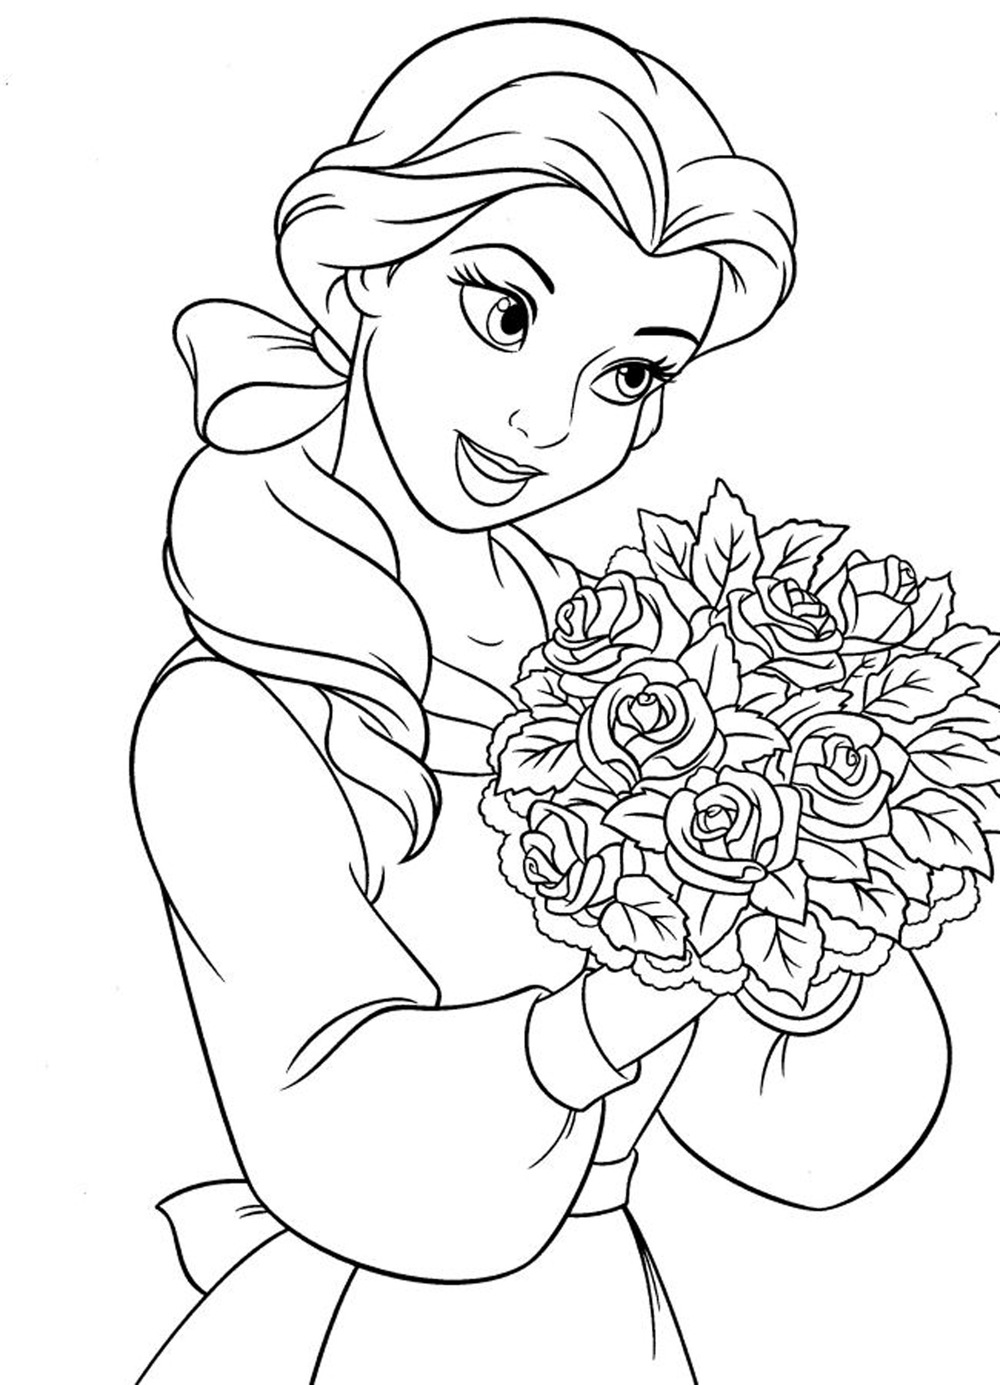 Disney Princess Tiana Coloring Page | Disney | Pinterest | free printable coloring pages disney princesses